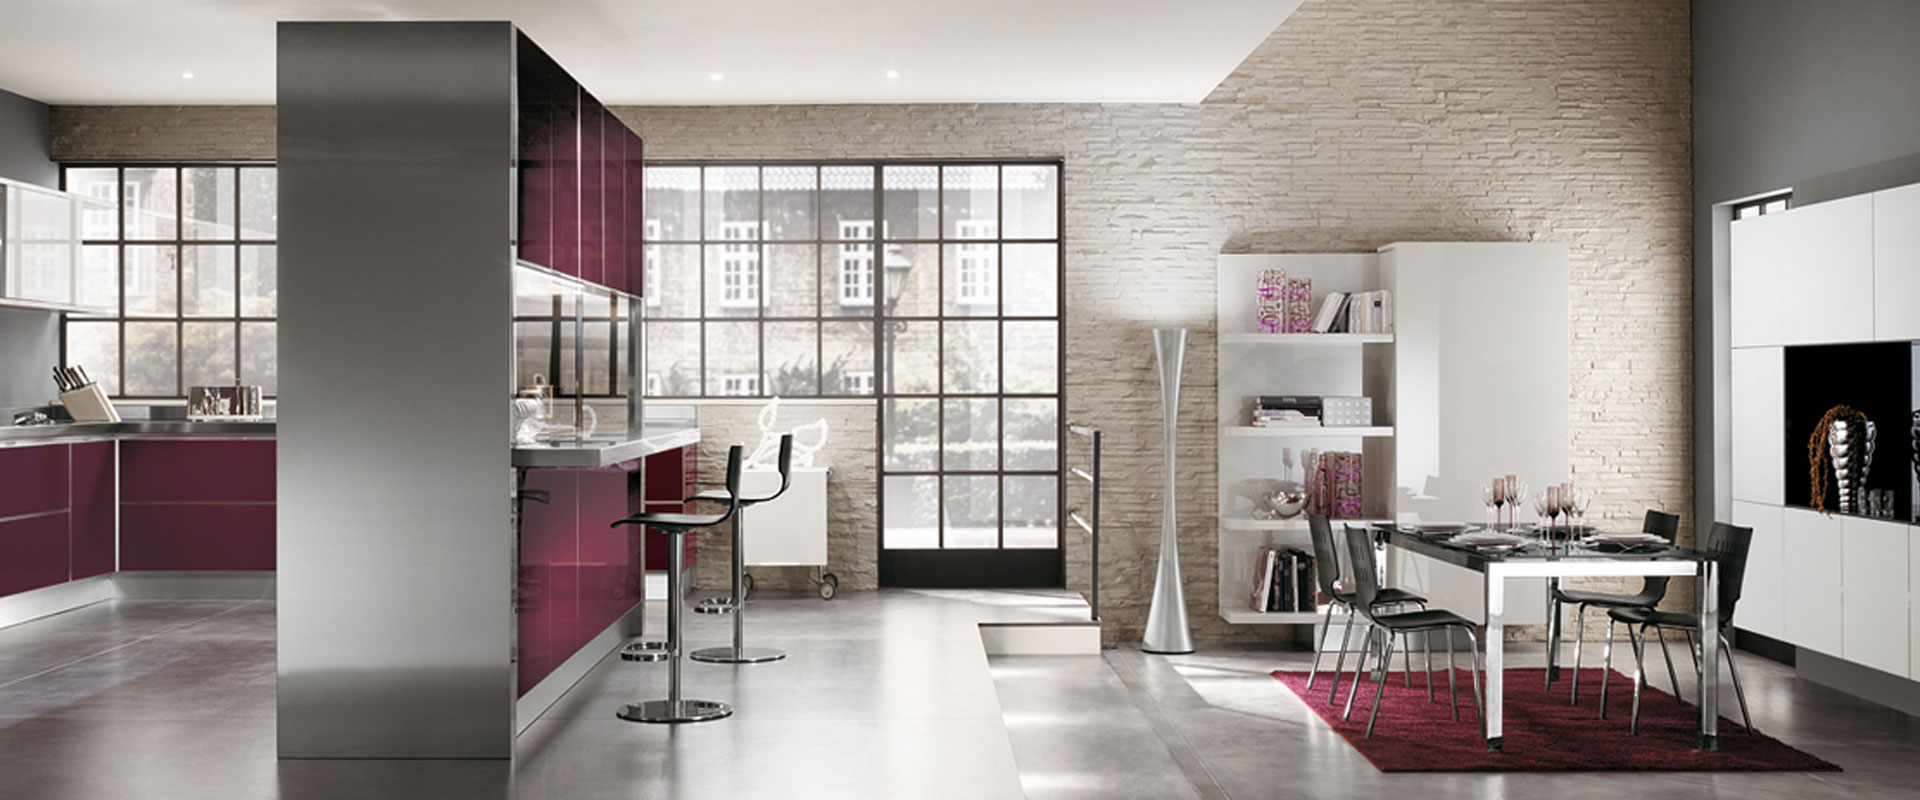 Scenery casadesign for Arredo cucina design